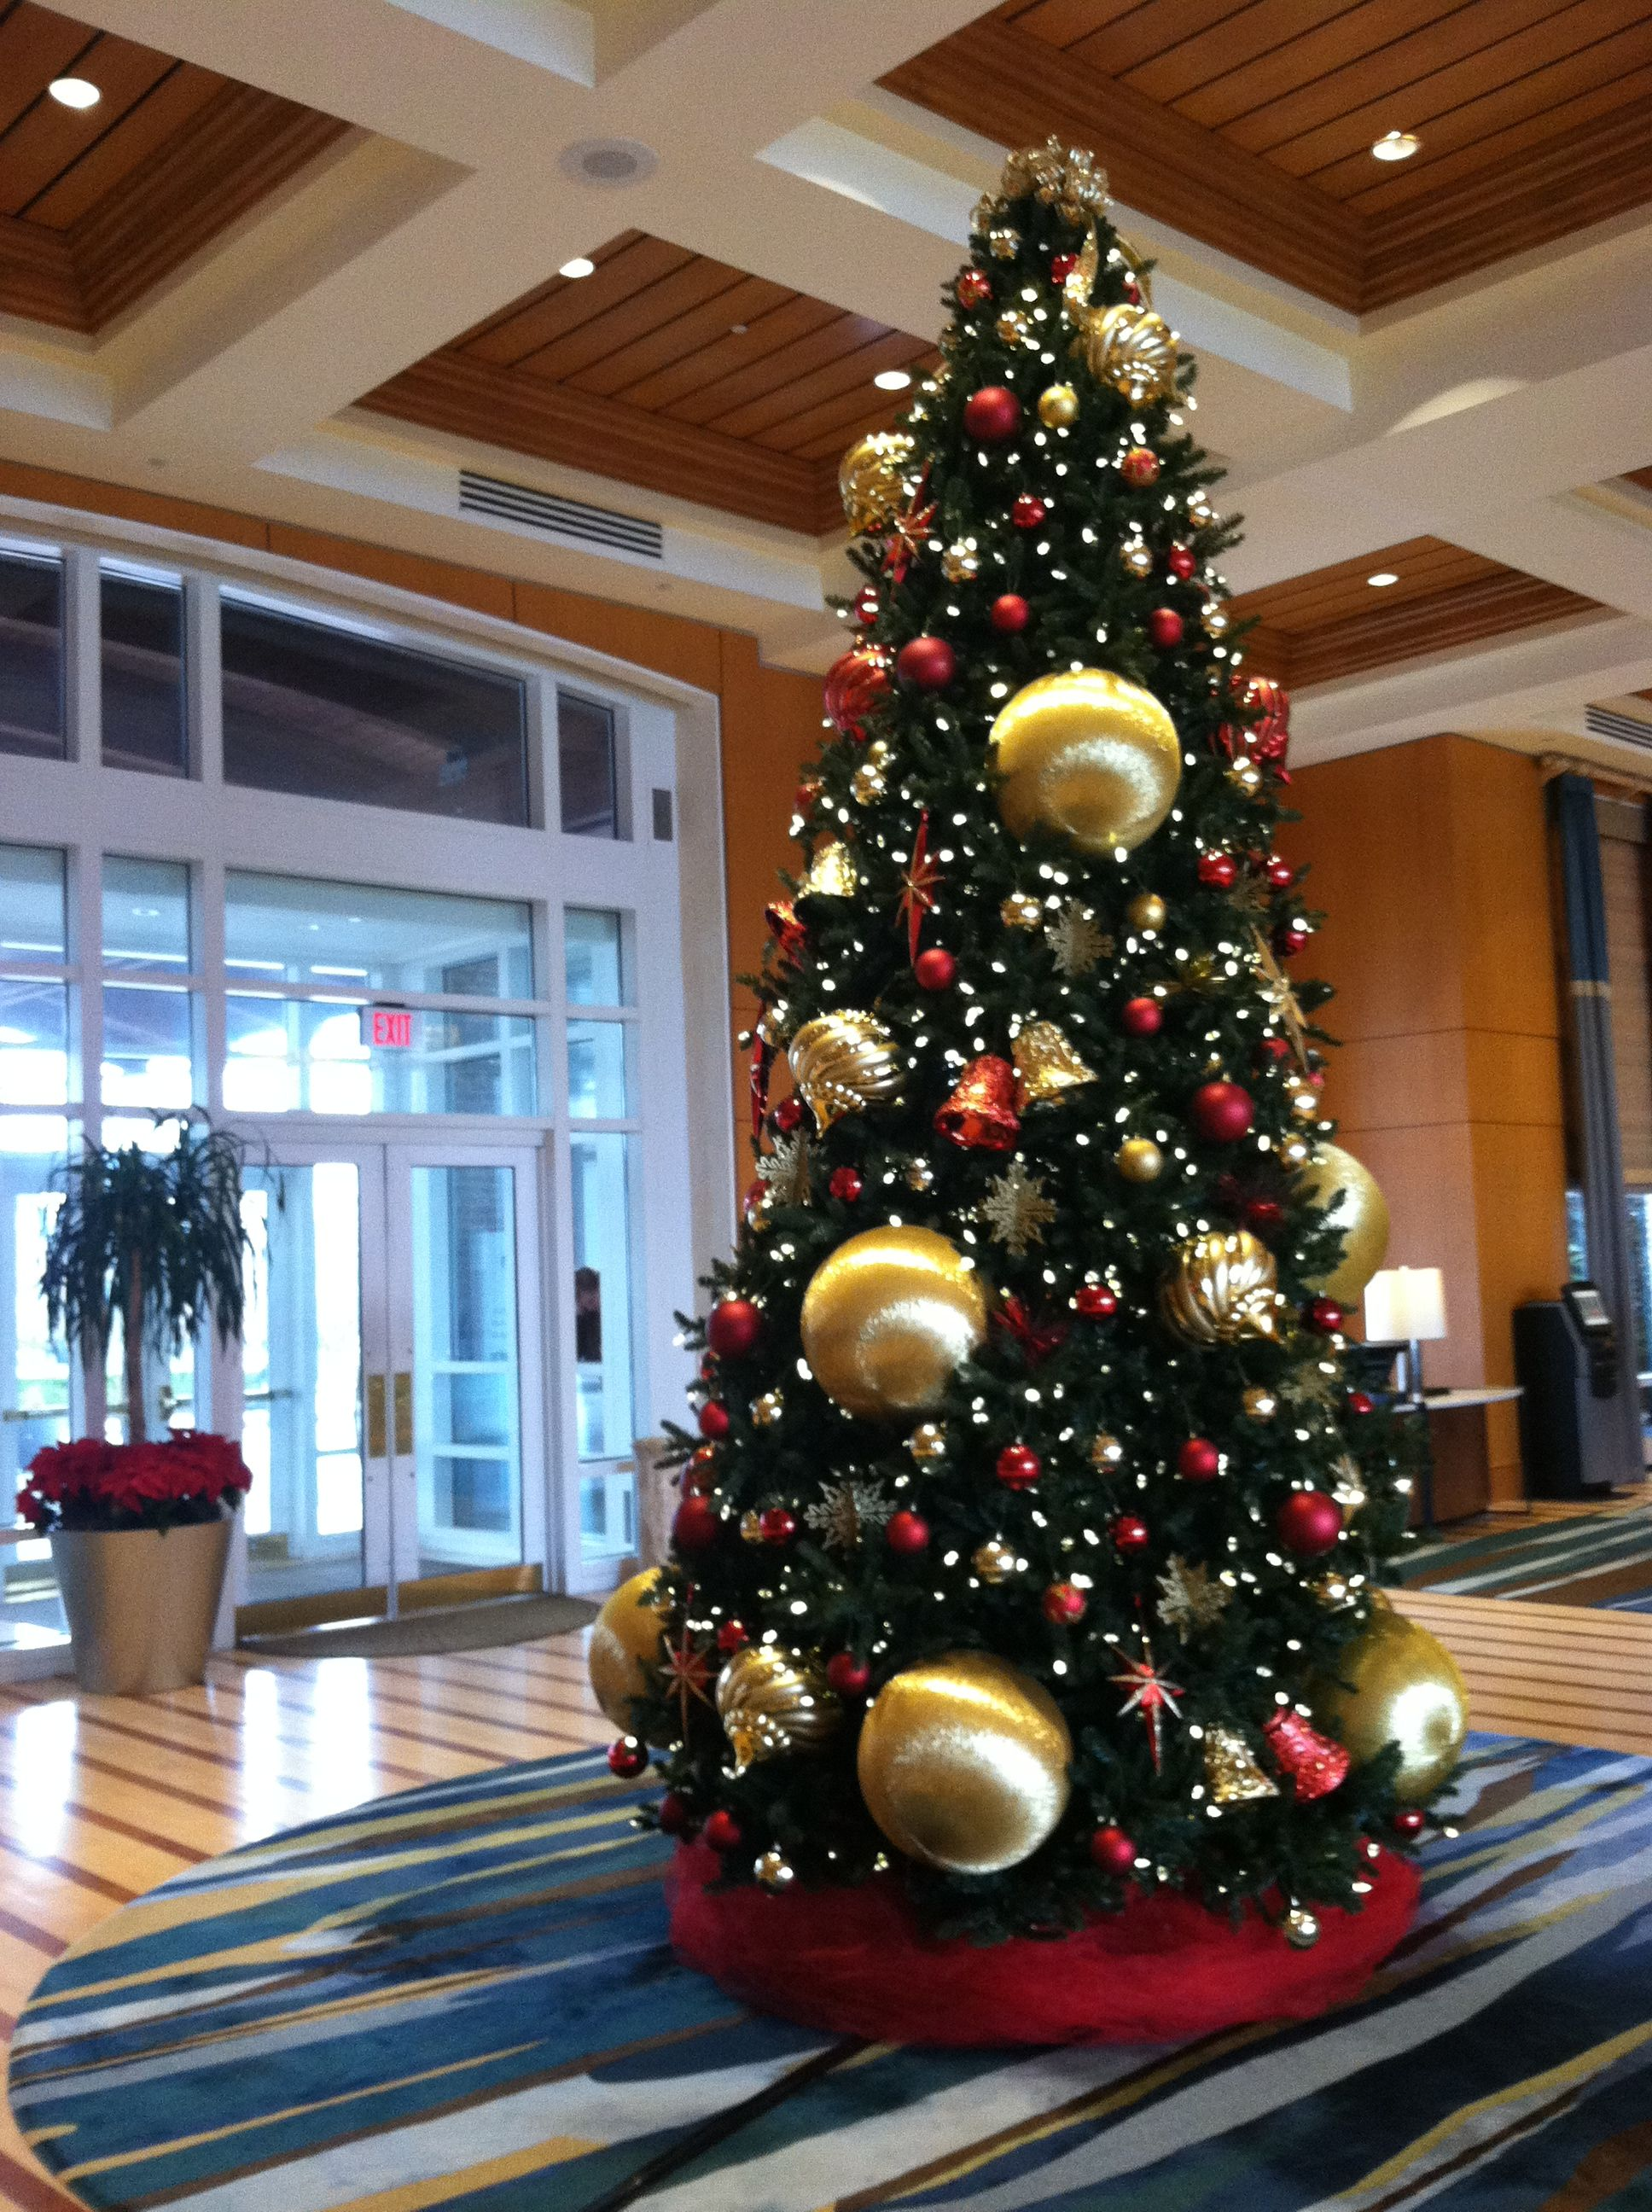 our 15ft christmas tree is ready to greet you in the lobby ochristmastree hyattregencychesapeakebay